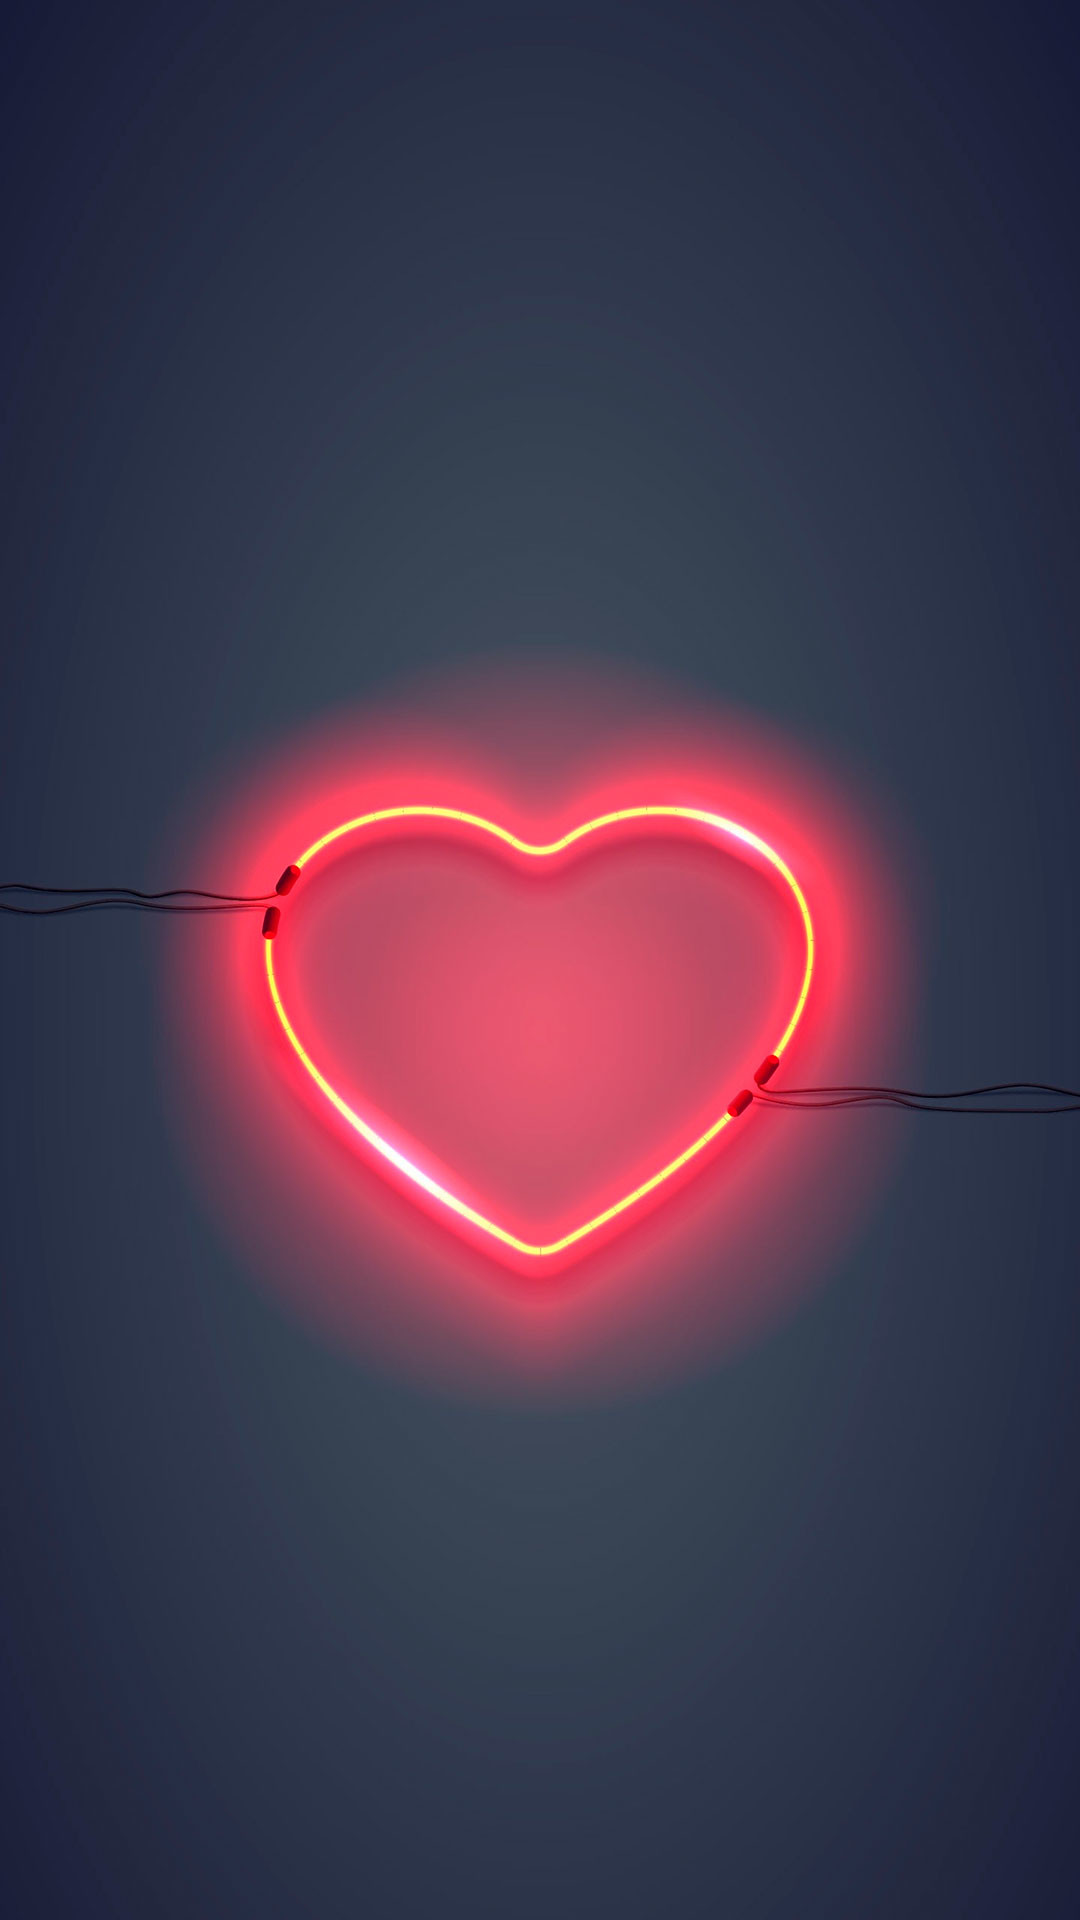 51 Neon Signs Wallpapers on WallpaperPlay 1080x1920